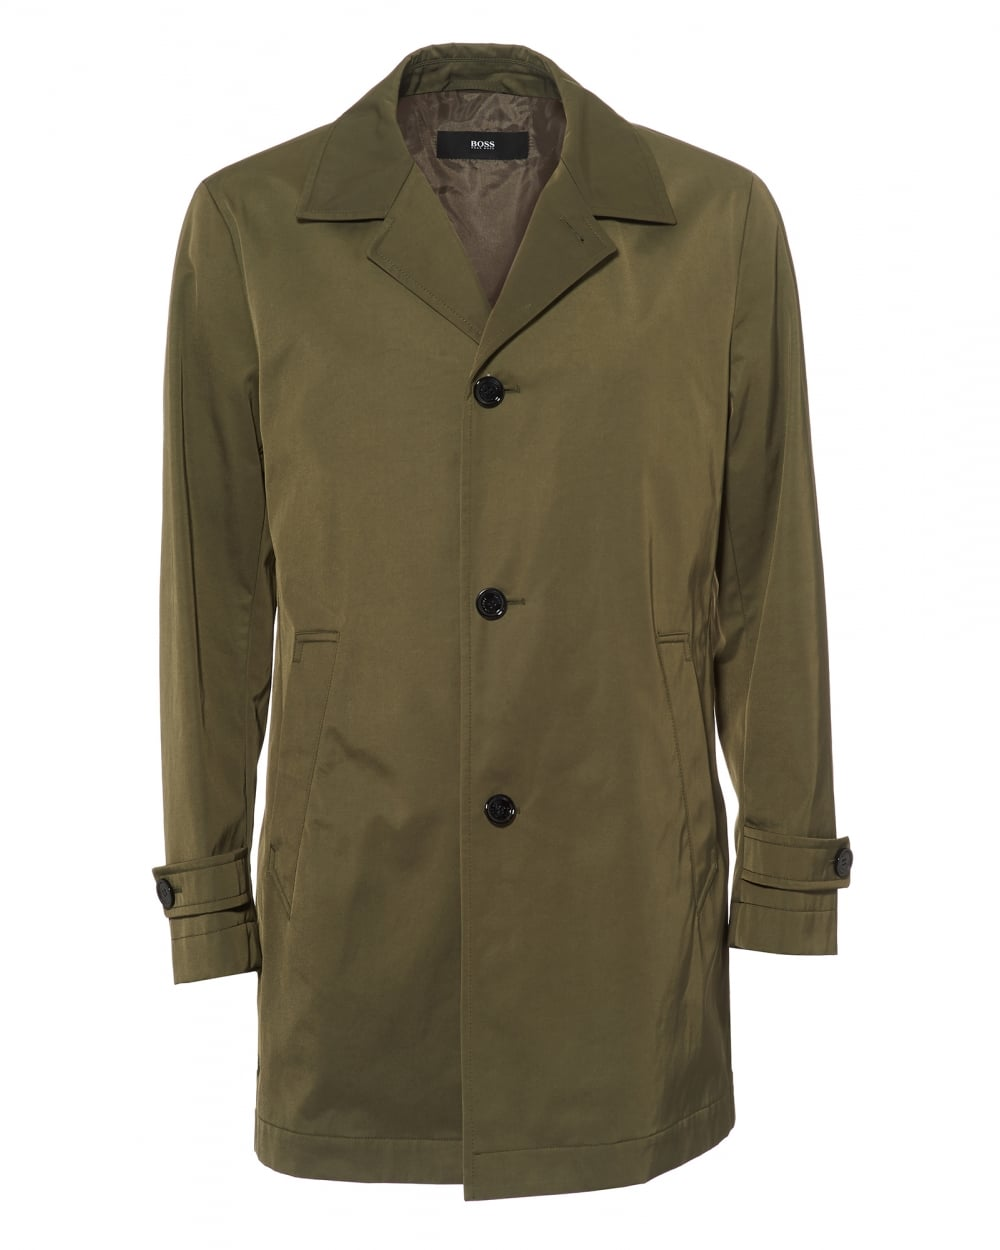 Relatively Hugo Boss Classic Mens Dais Jacket, Water Repellent Olive Raincoat CT68